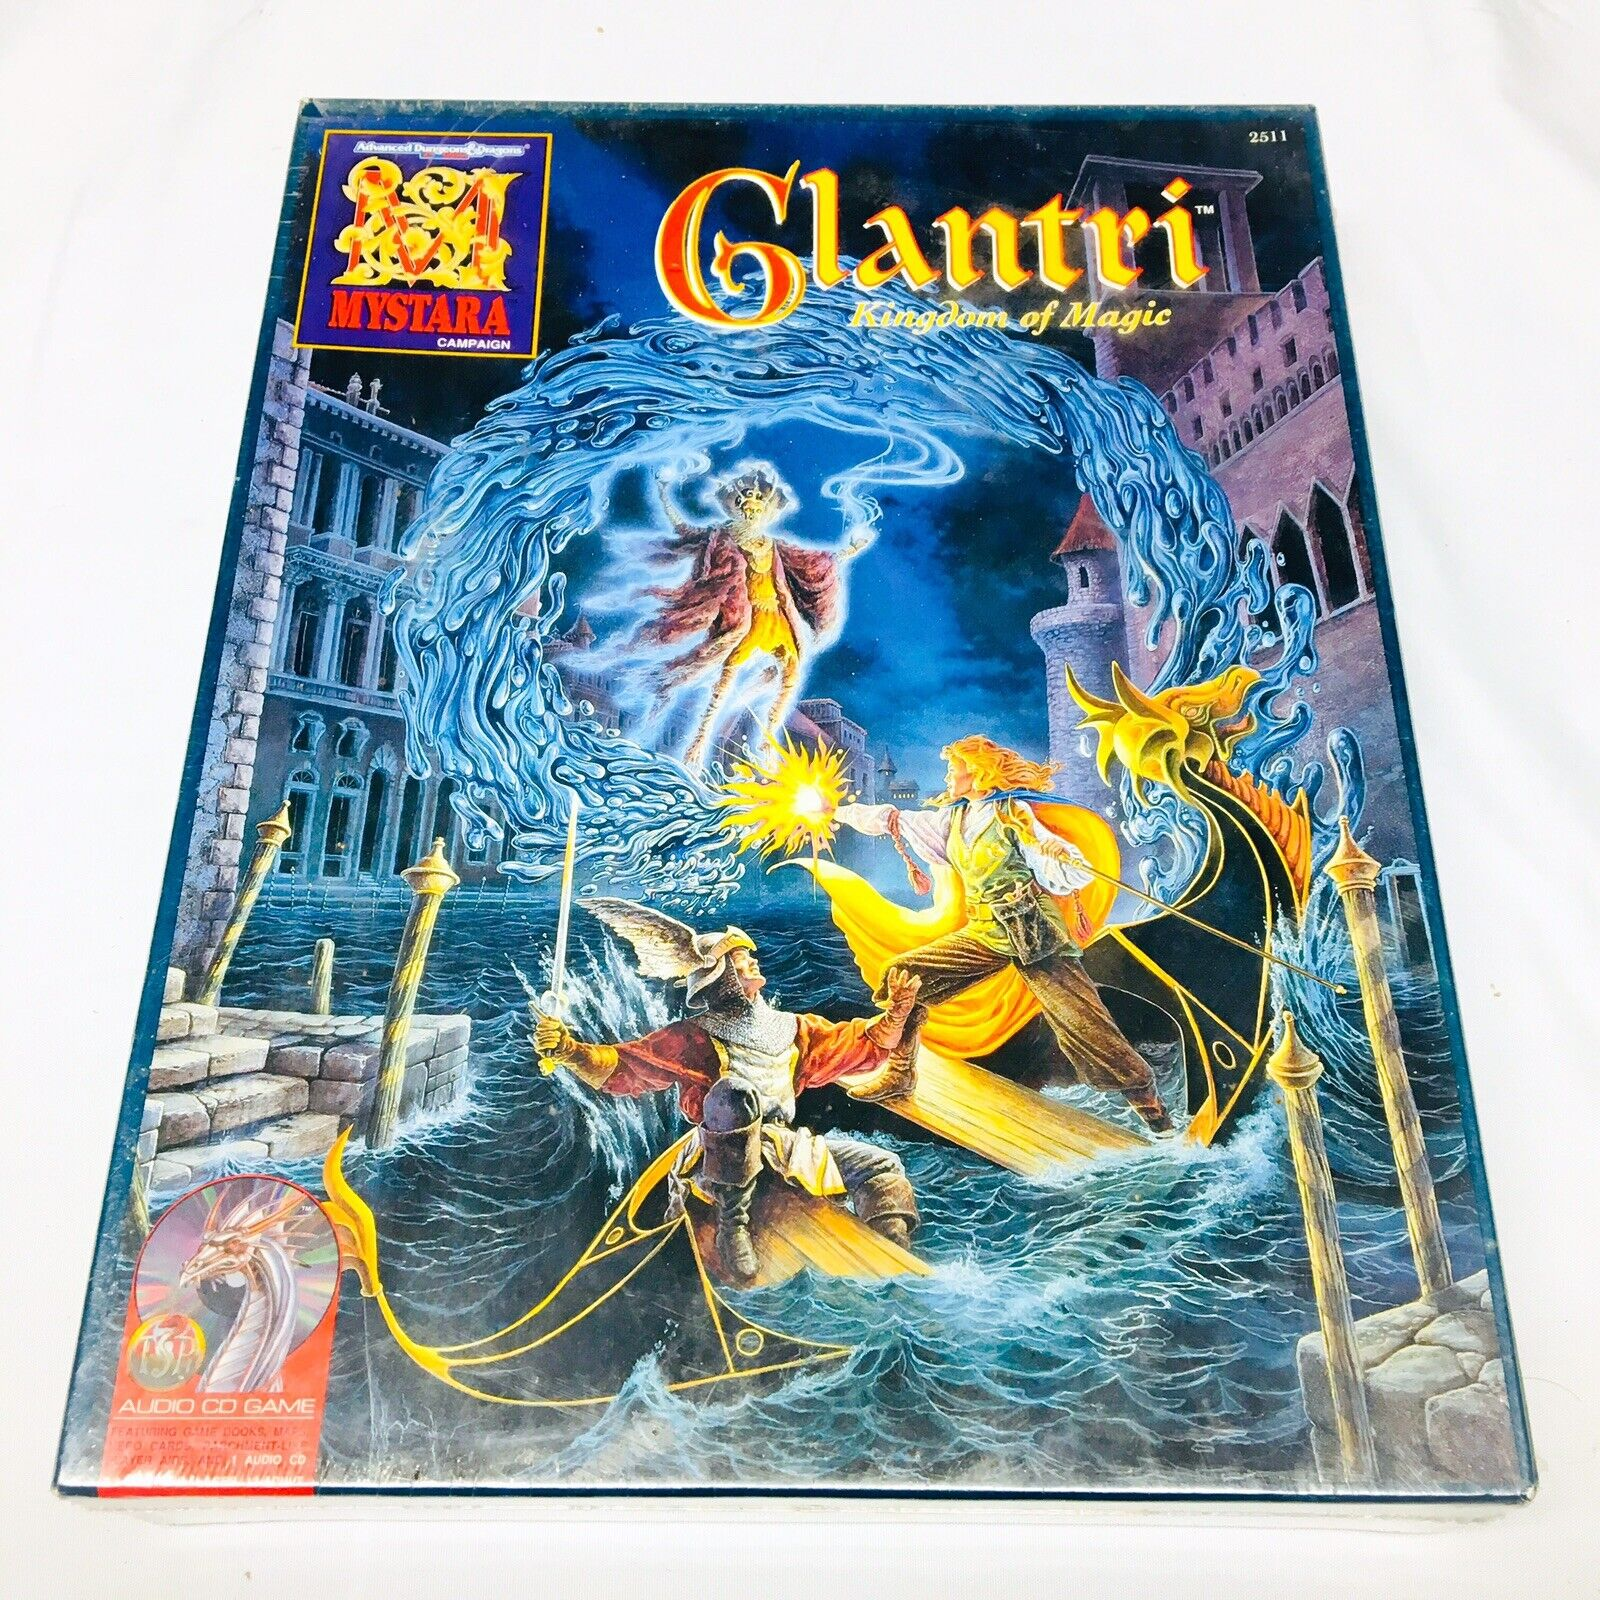 Glantri reino de magia MyEstrellaa Box Set NUEVO AD&D 2nd Ed. TSR Sellado Con Cd